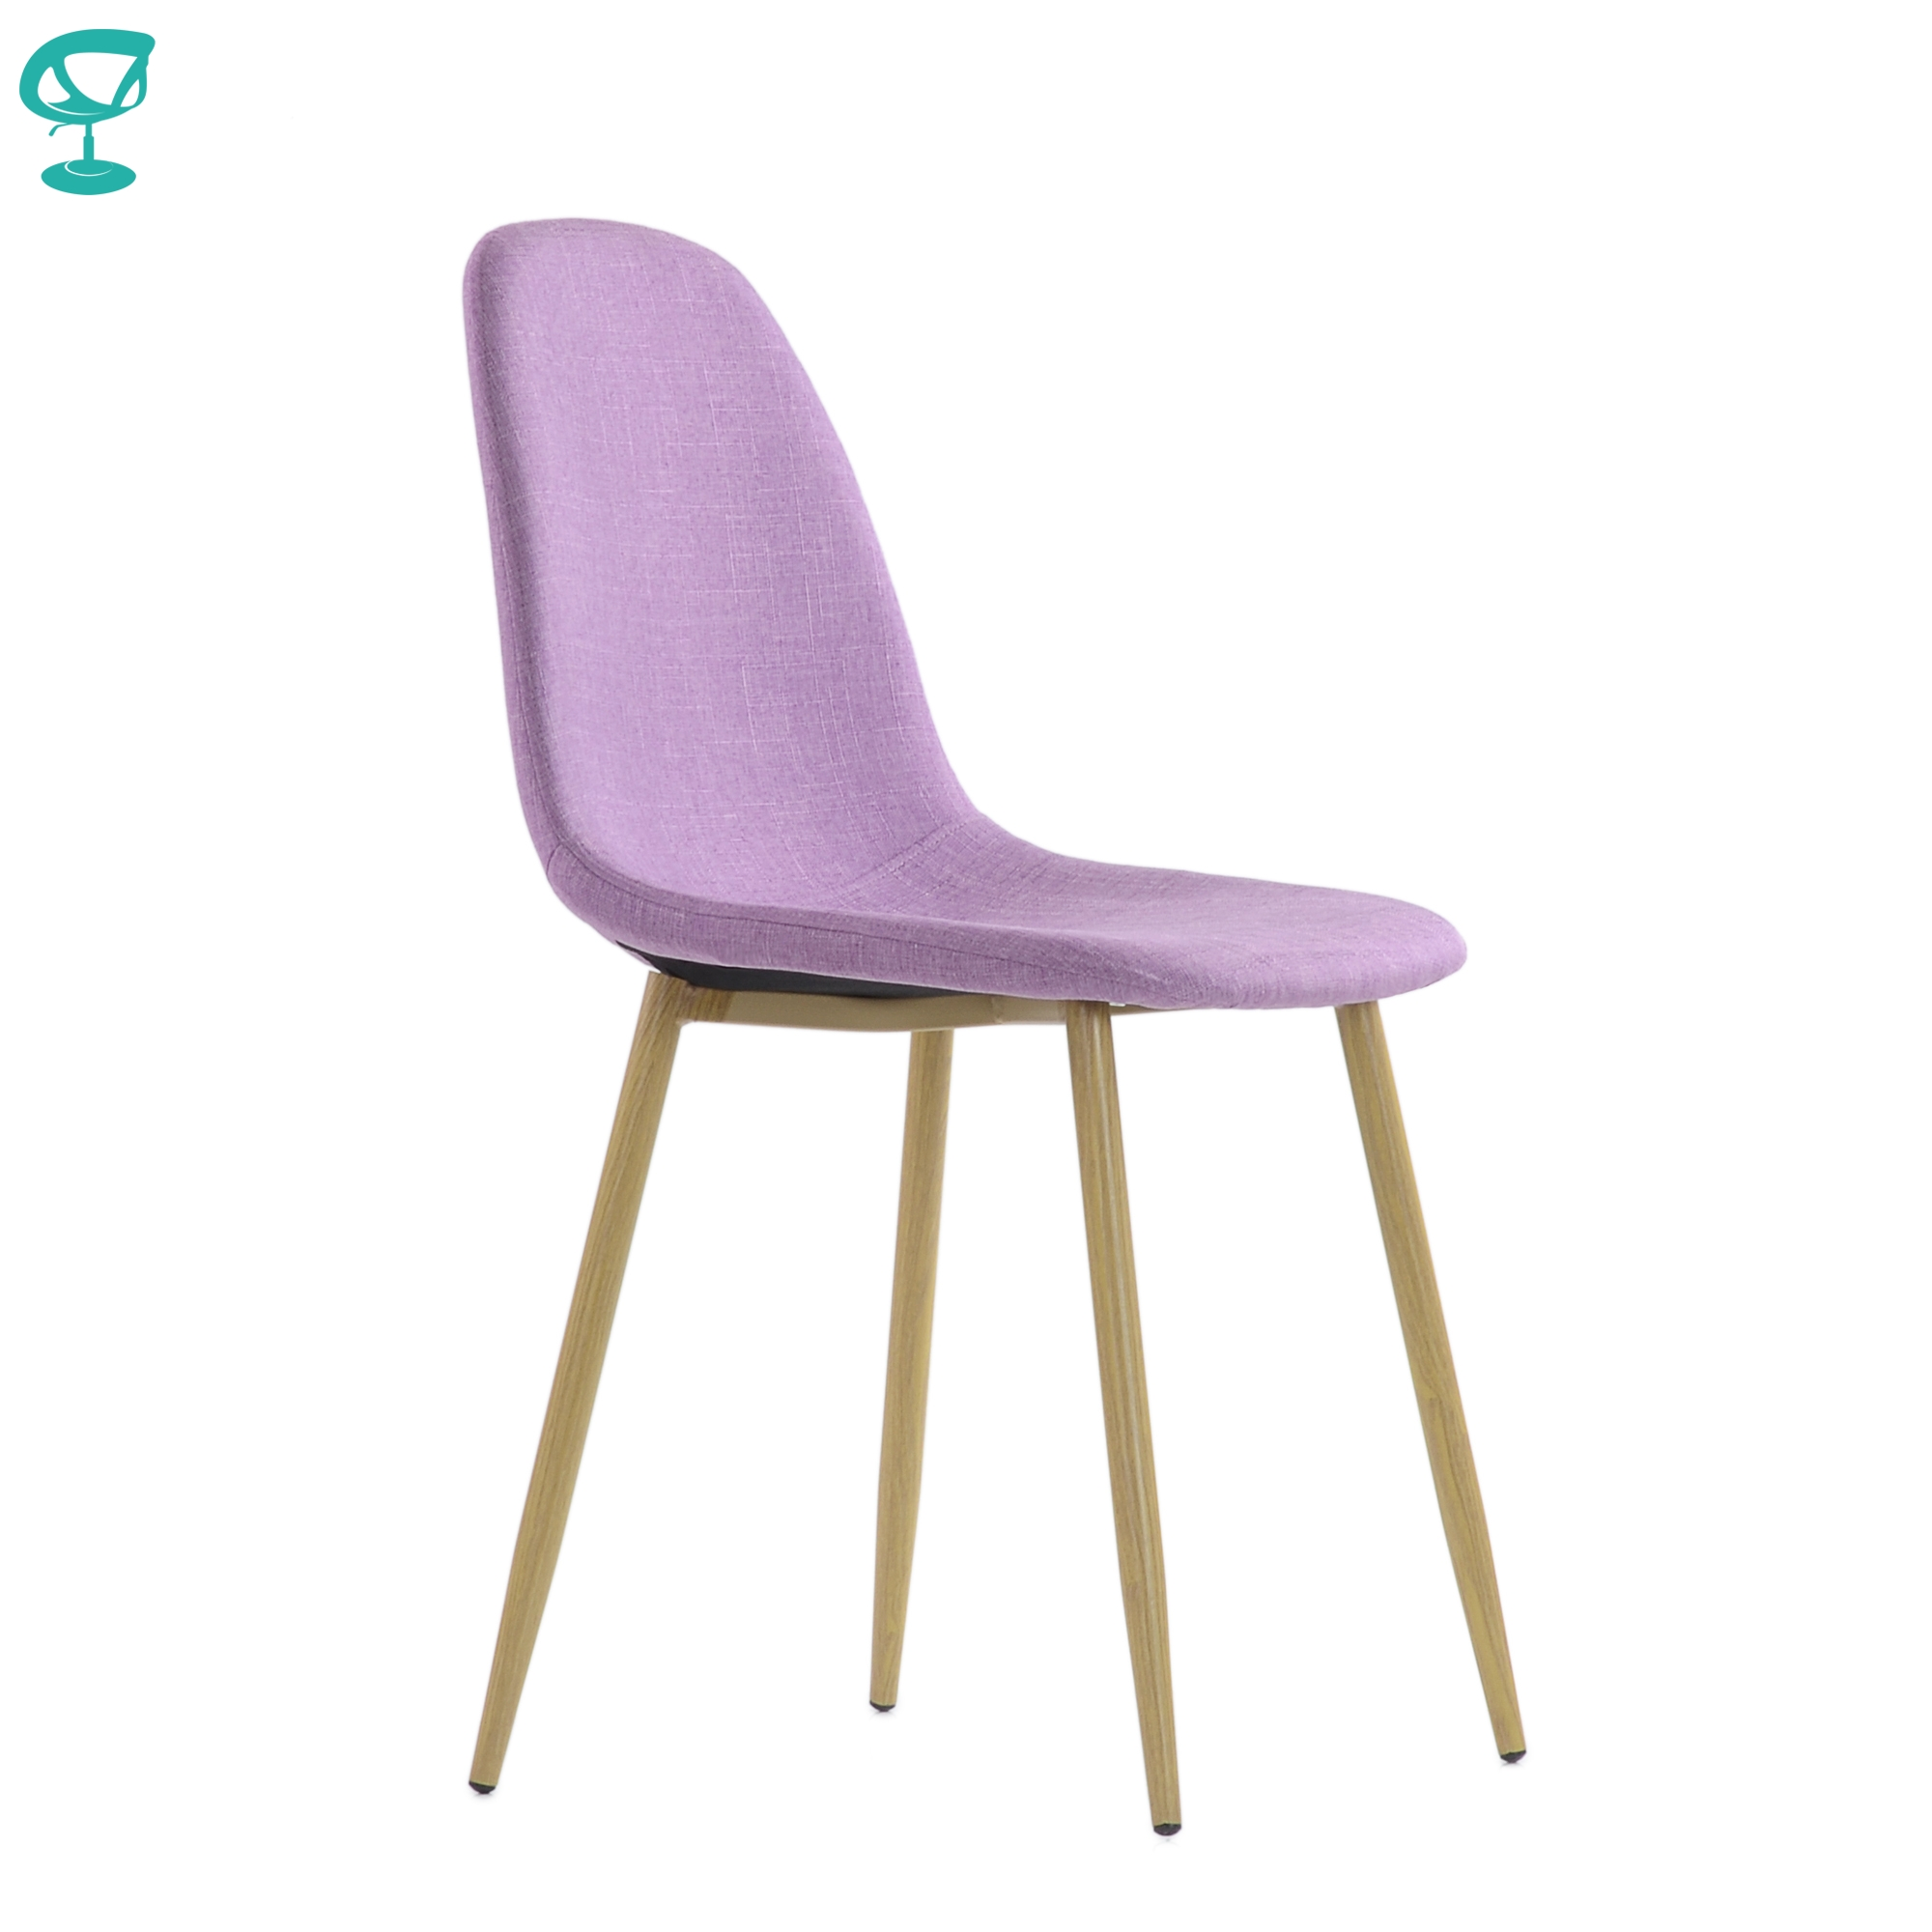 95748 Barneo S-15 Kitchen chair legs metal seat fabric chair for living room chair dining chair table chair furniture for kitchen